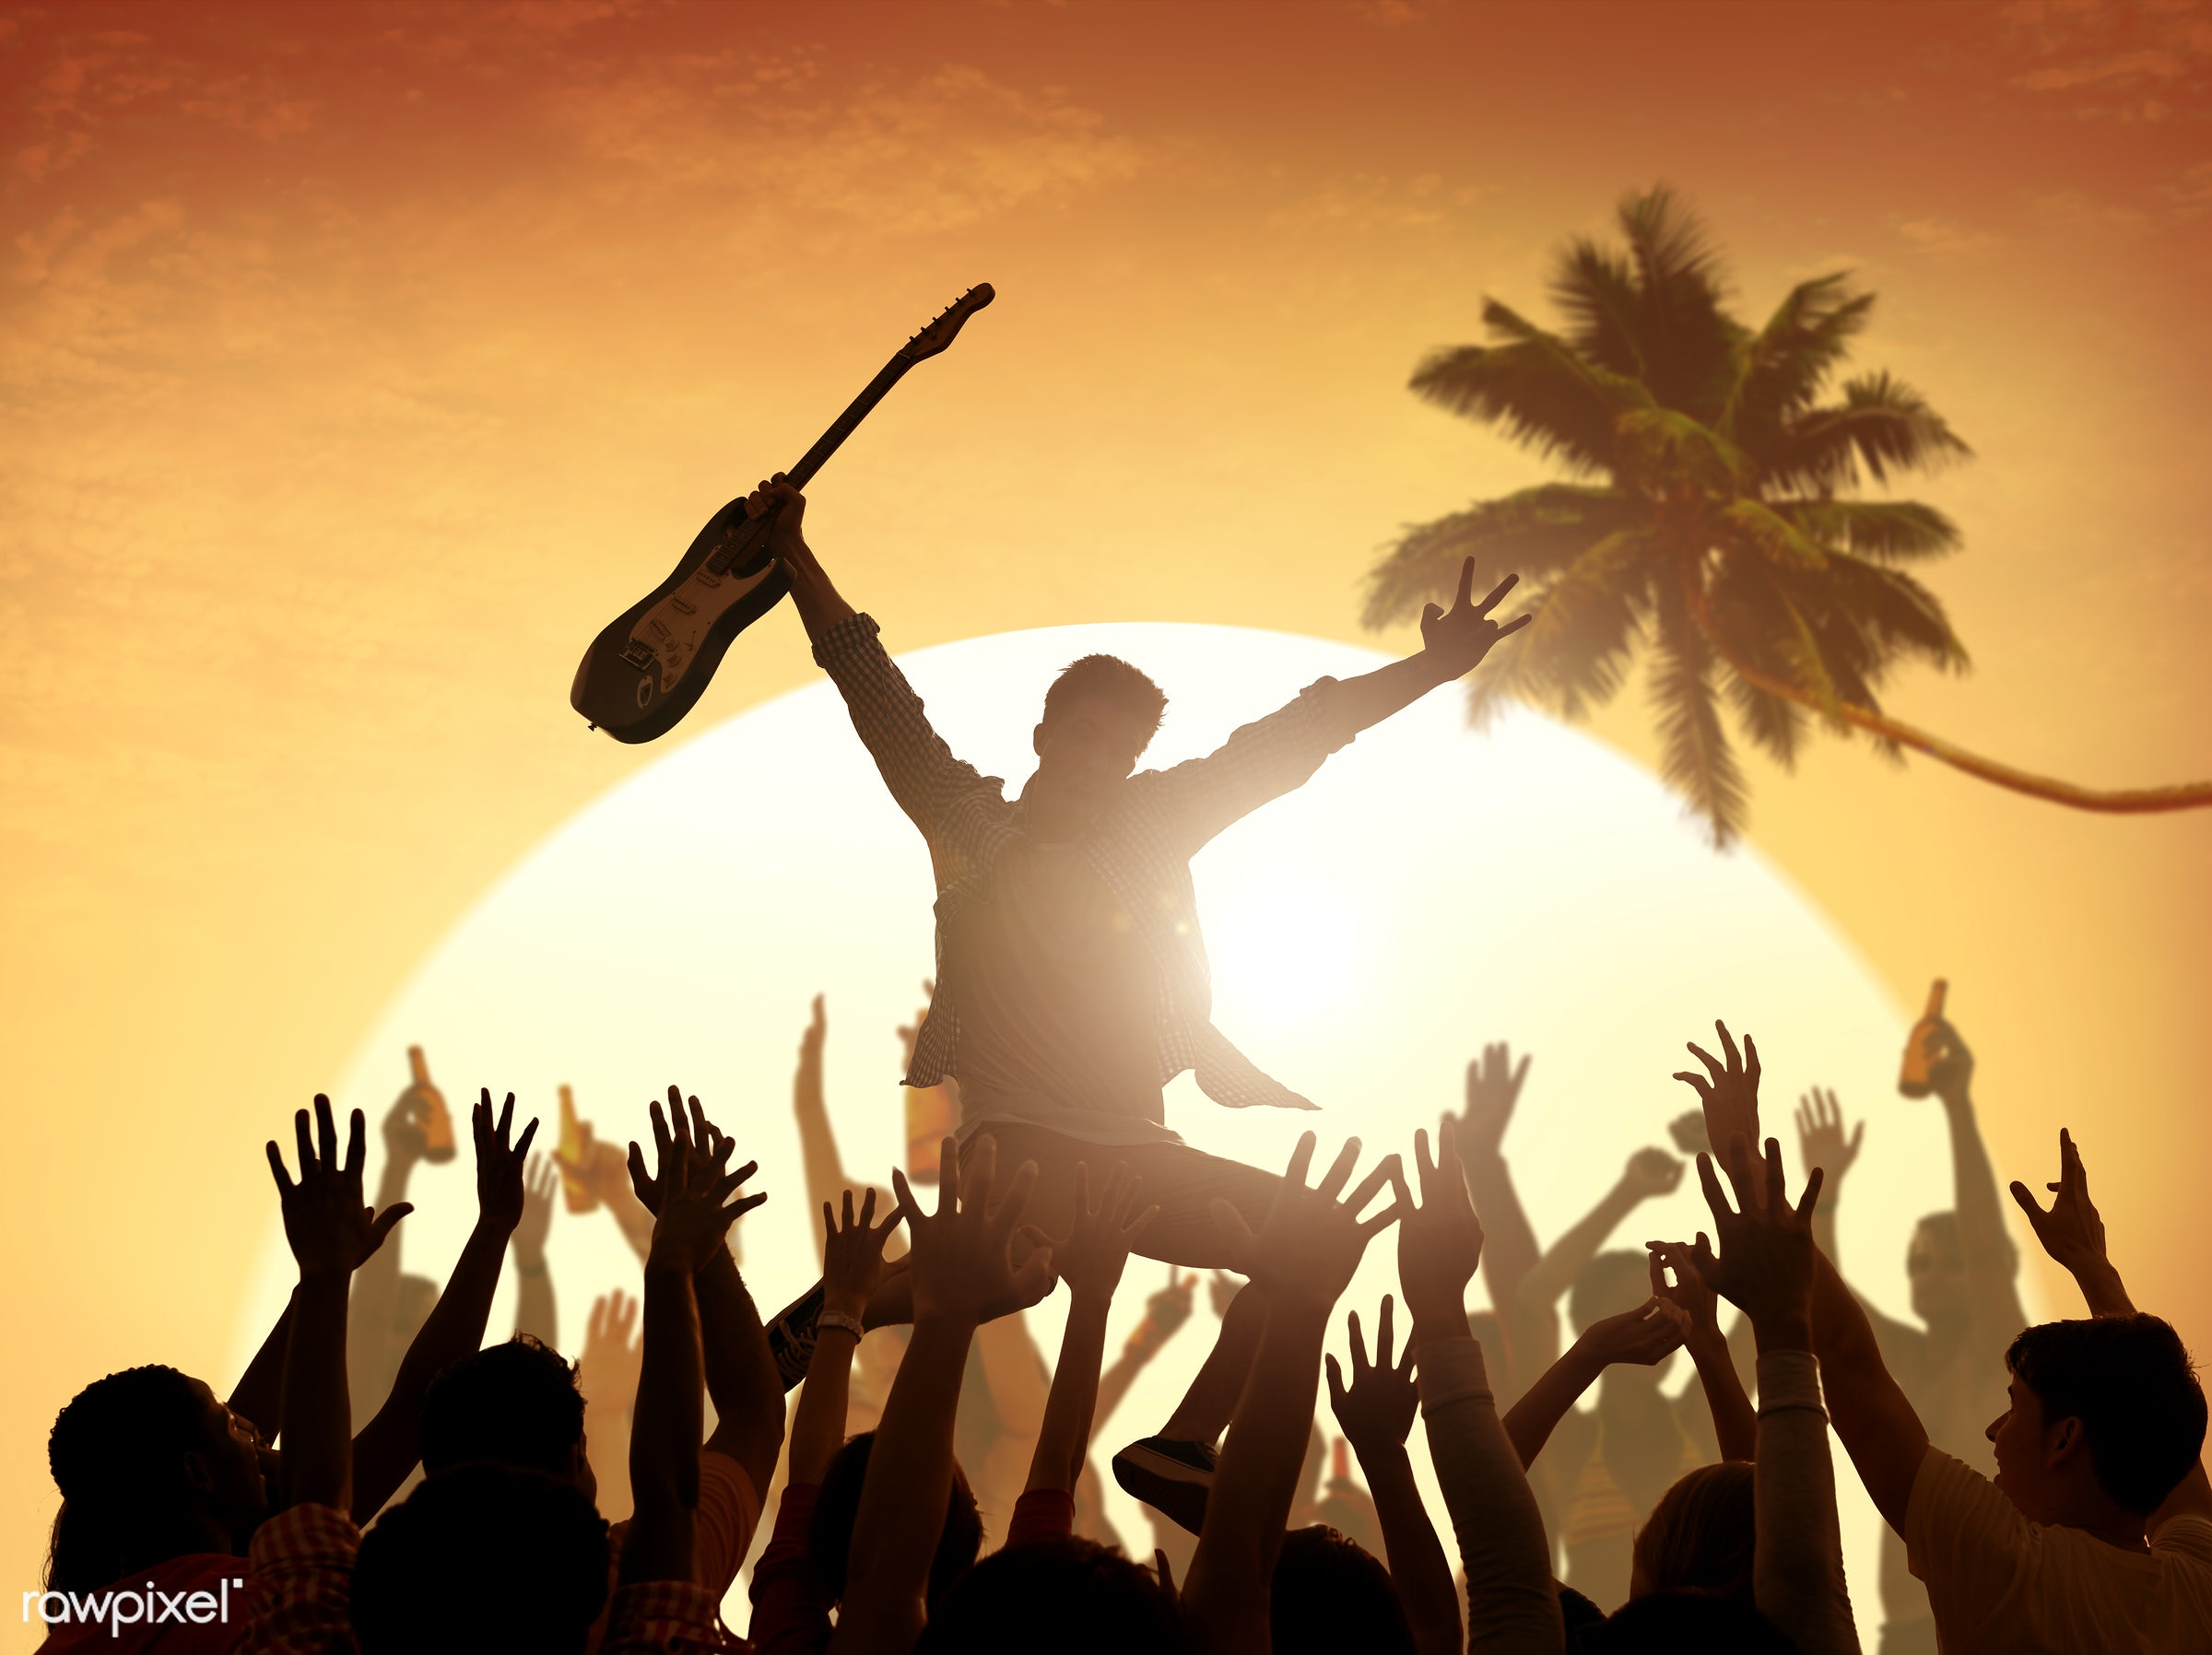 adolescence, arms outstretched, arms raised, audience, back lit, carefree, celebration, cheerful, coconut palm tree,...